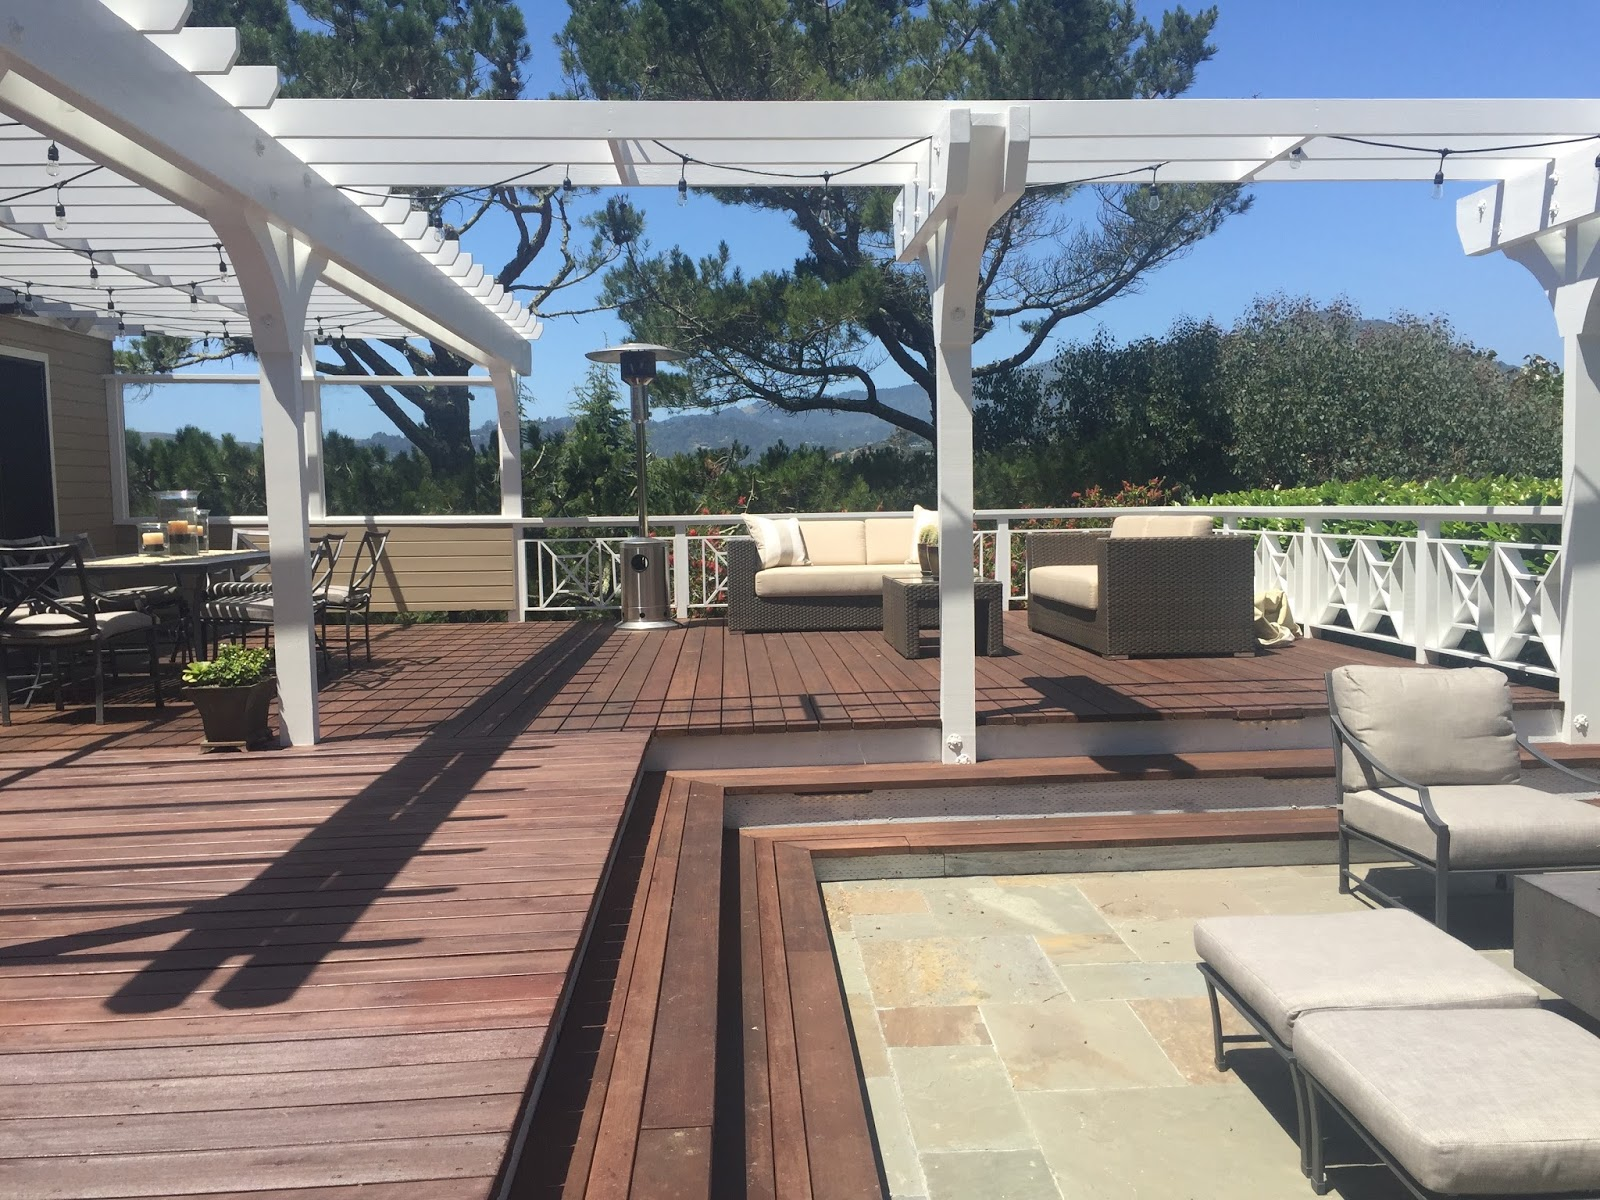 New Deck Slate Patio and California Casual Entertaining Classic